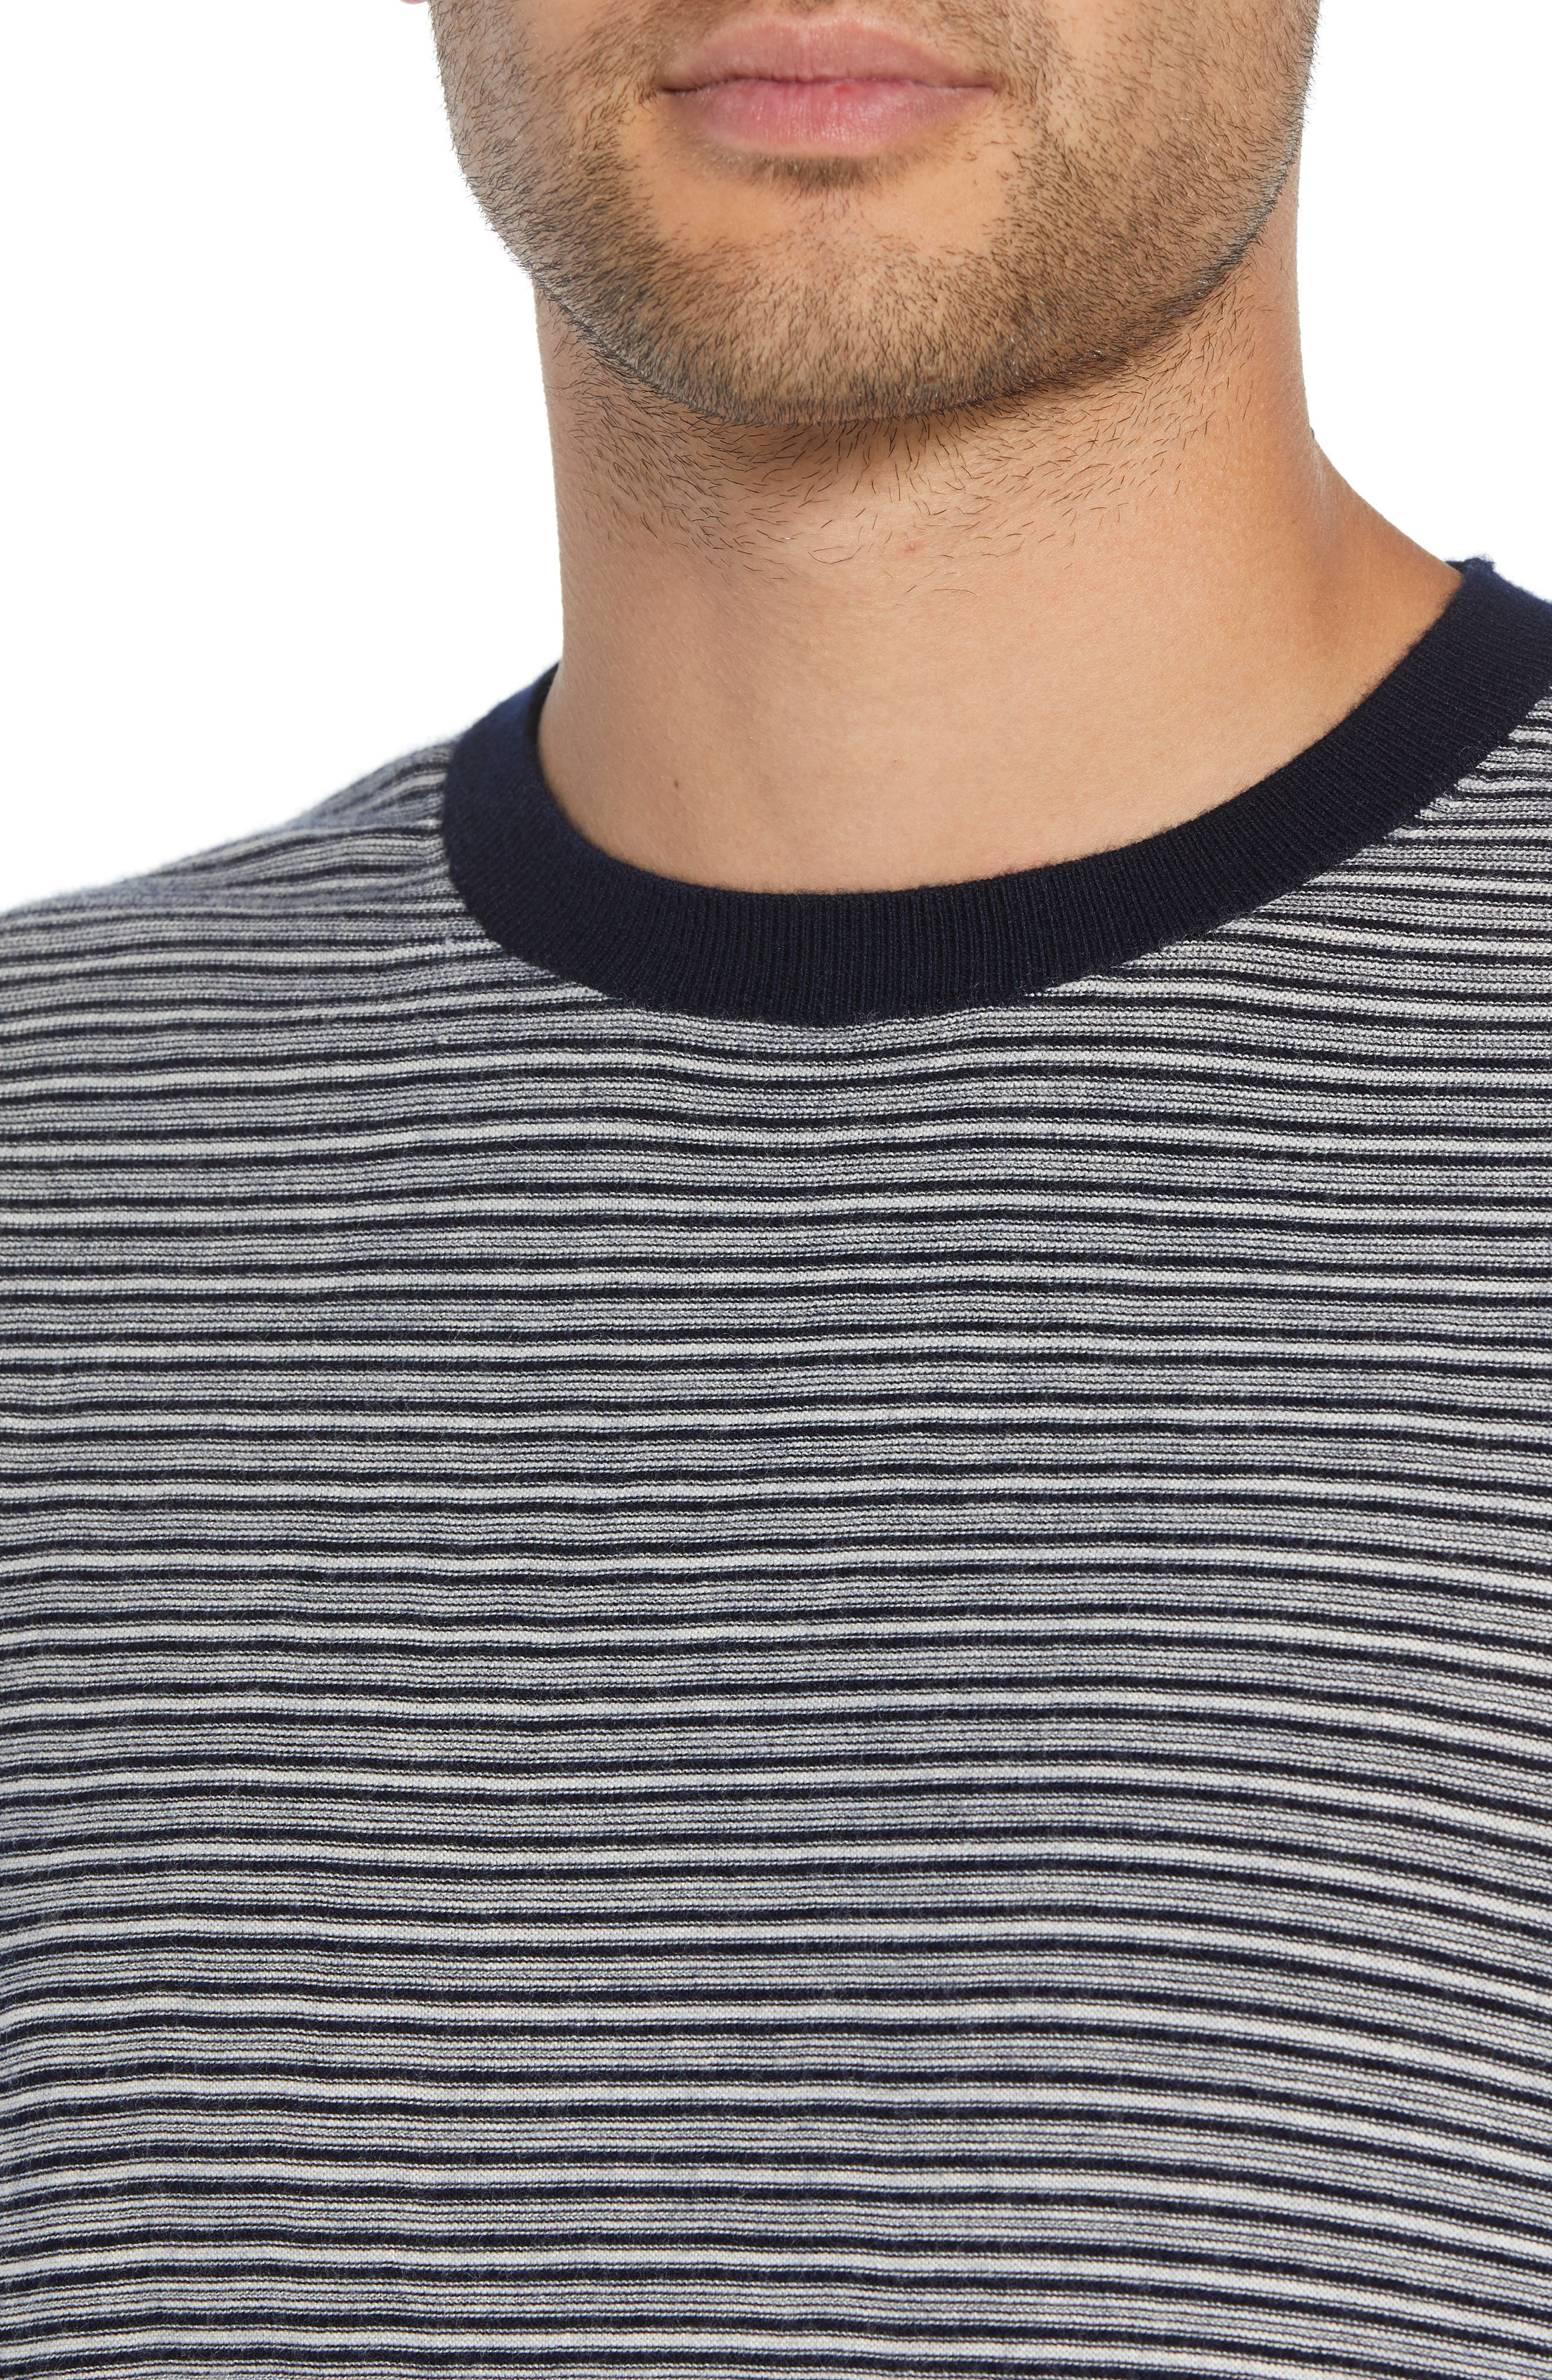 Striped Wool & Cashmere Sweater,                             Alternate thumbnail 4, color,                             400